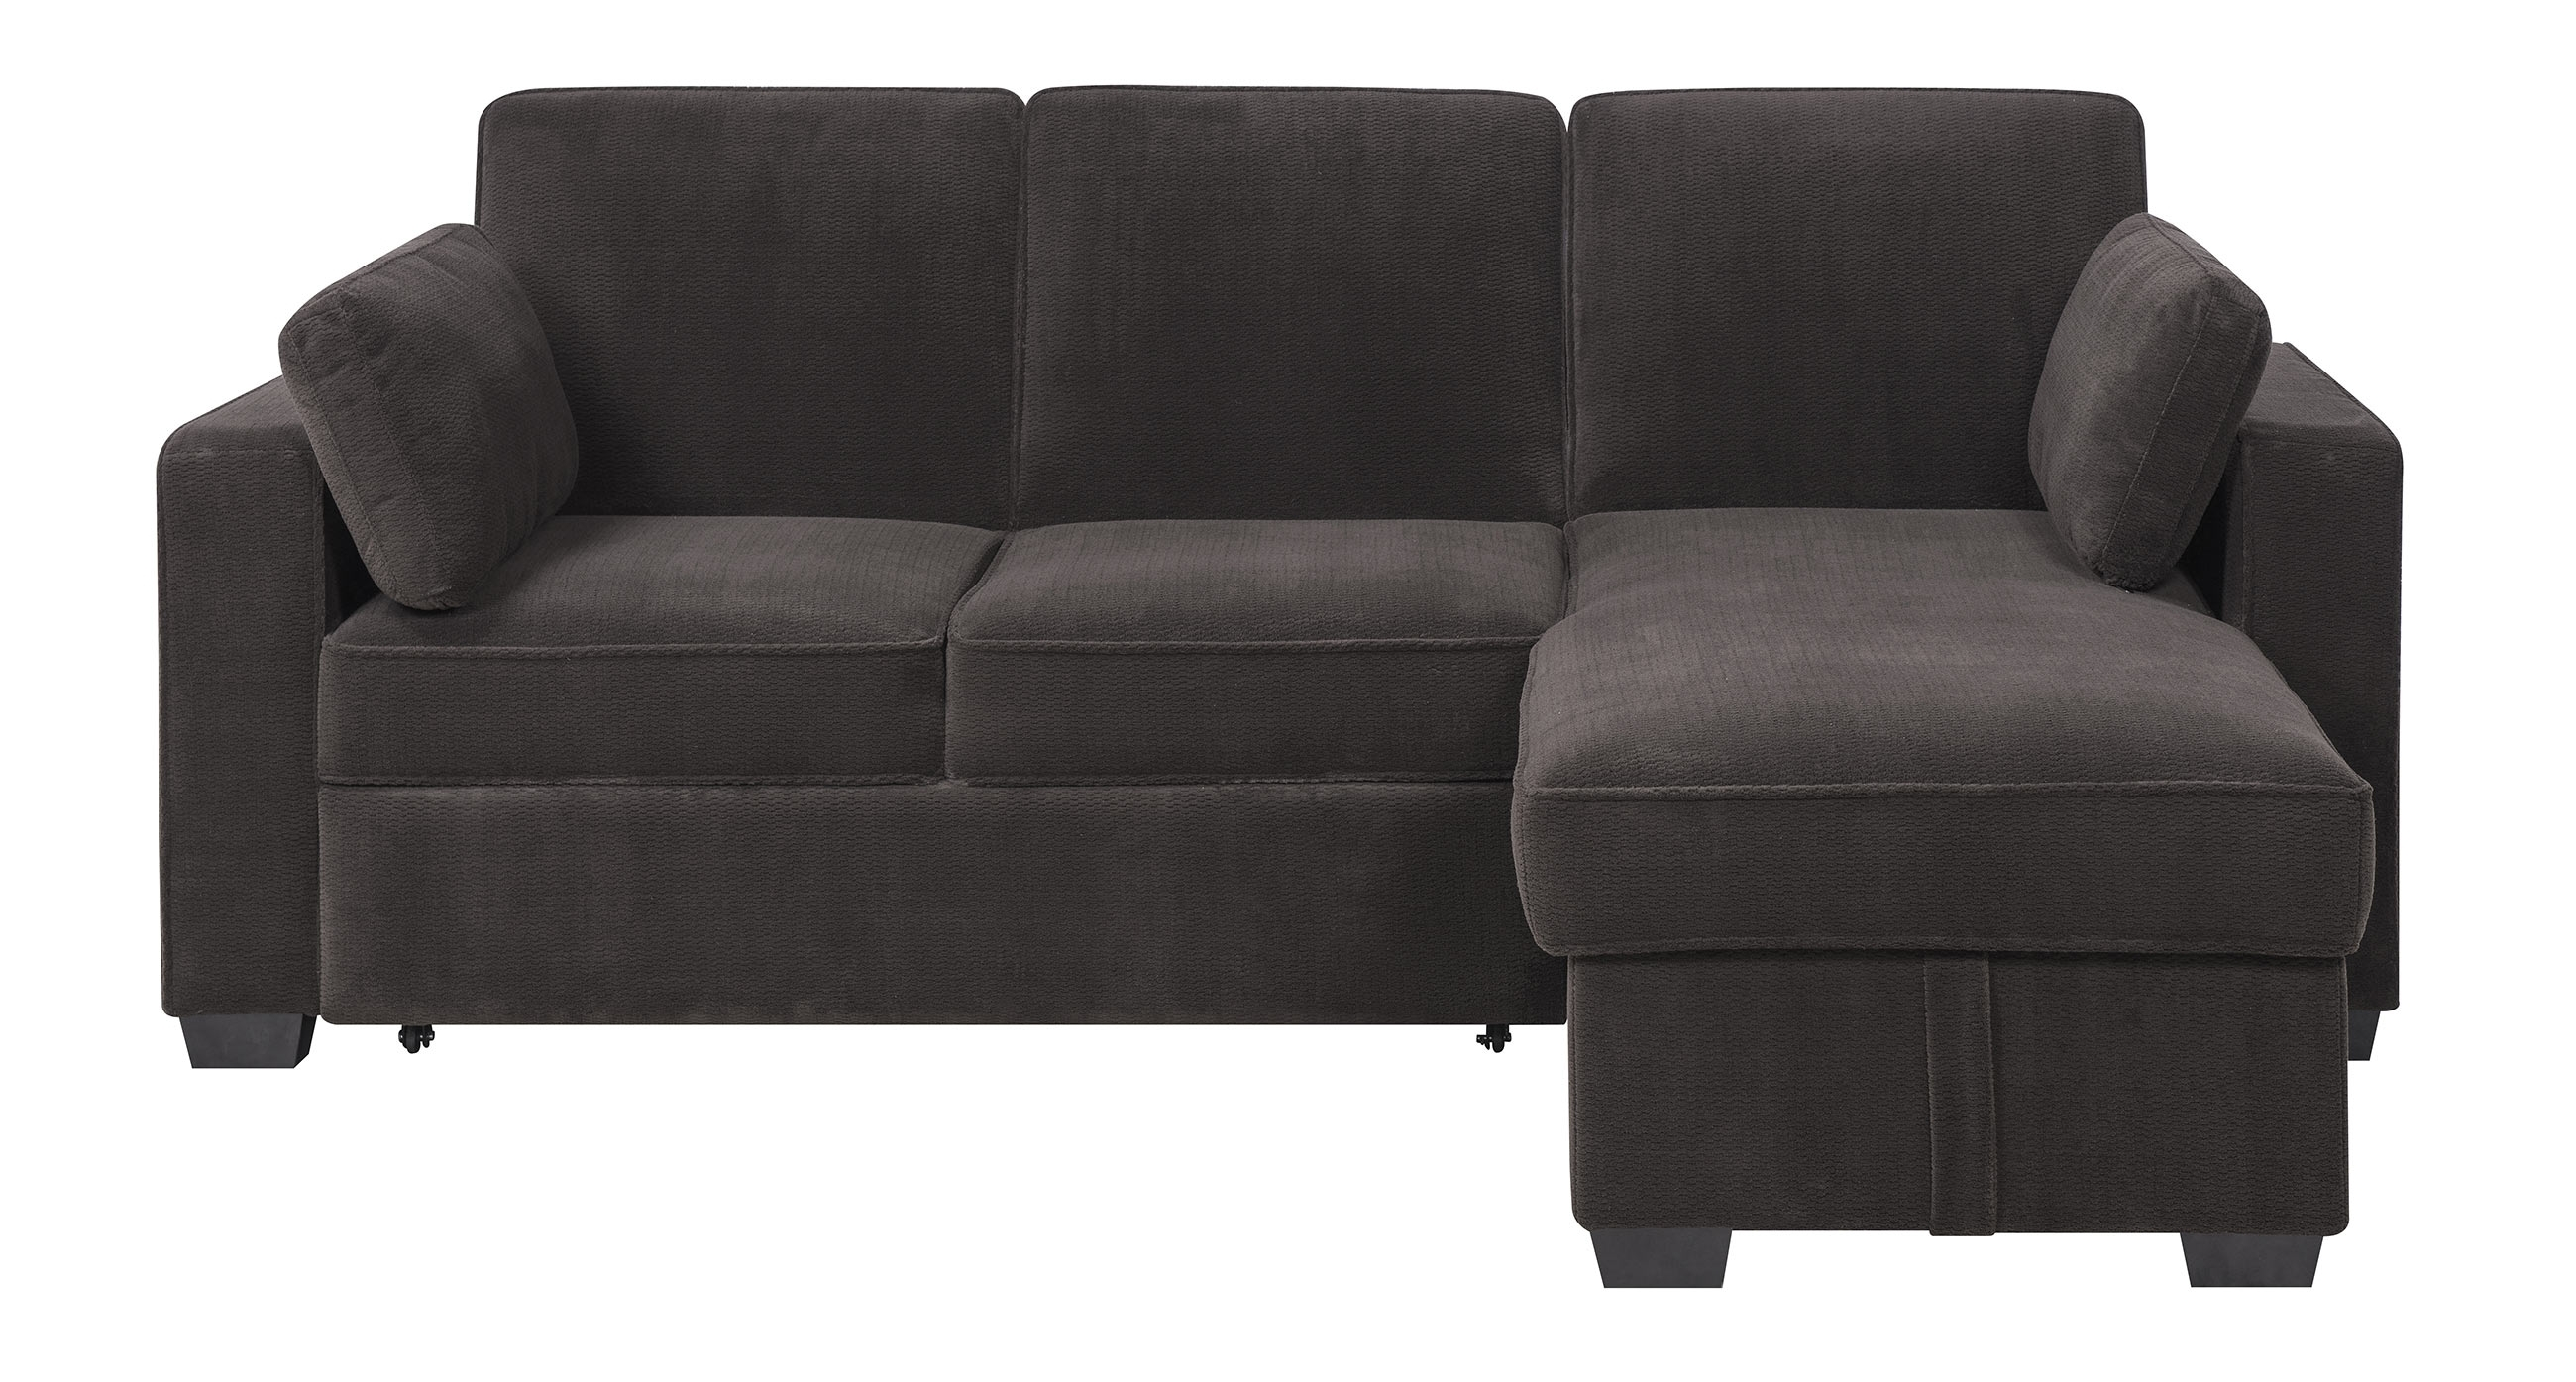 Chaela Sectional Convertible Sofa Dark Greyserta / Lifestyle With Best And Newest Convertible Sofas (View 11 of 20)